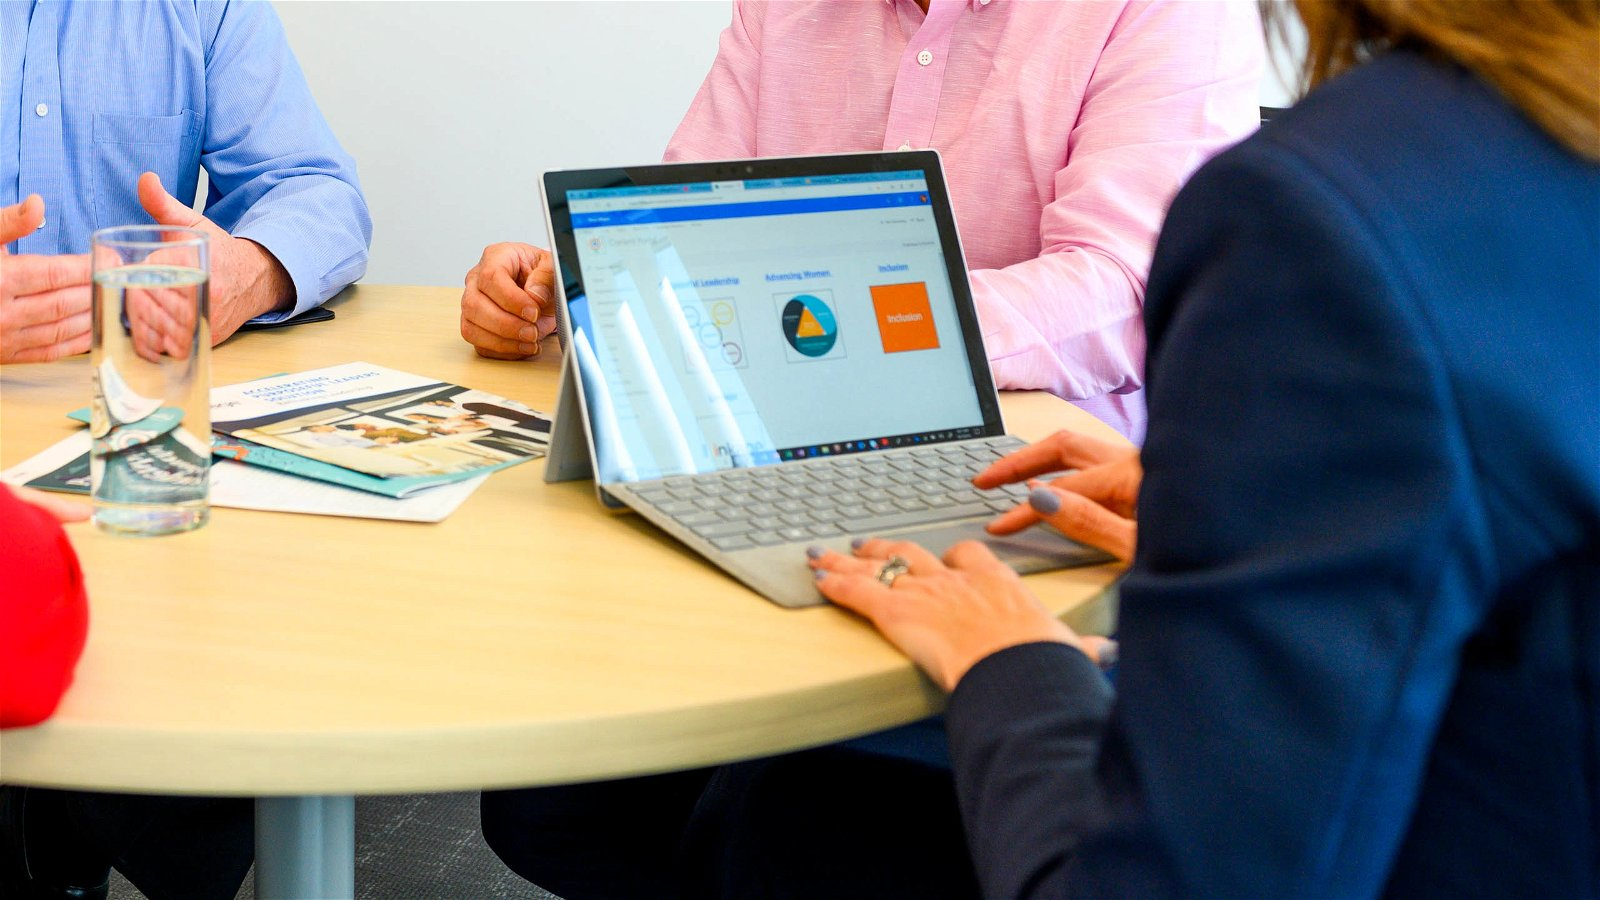 Woman types on Surface during meeting